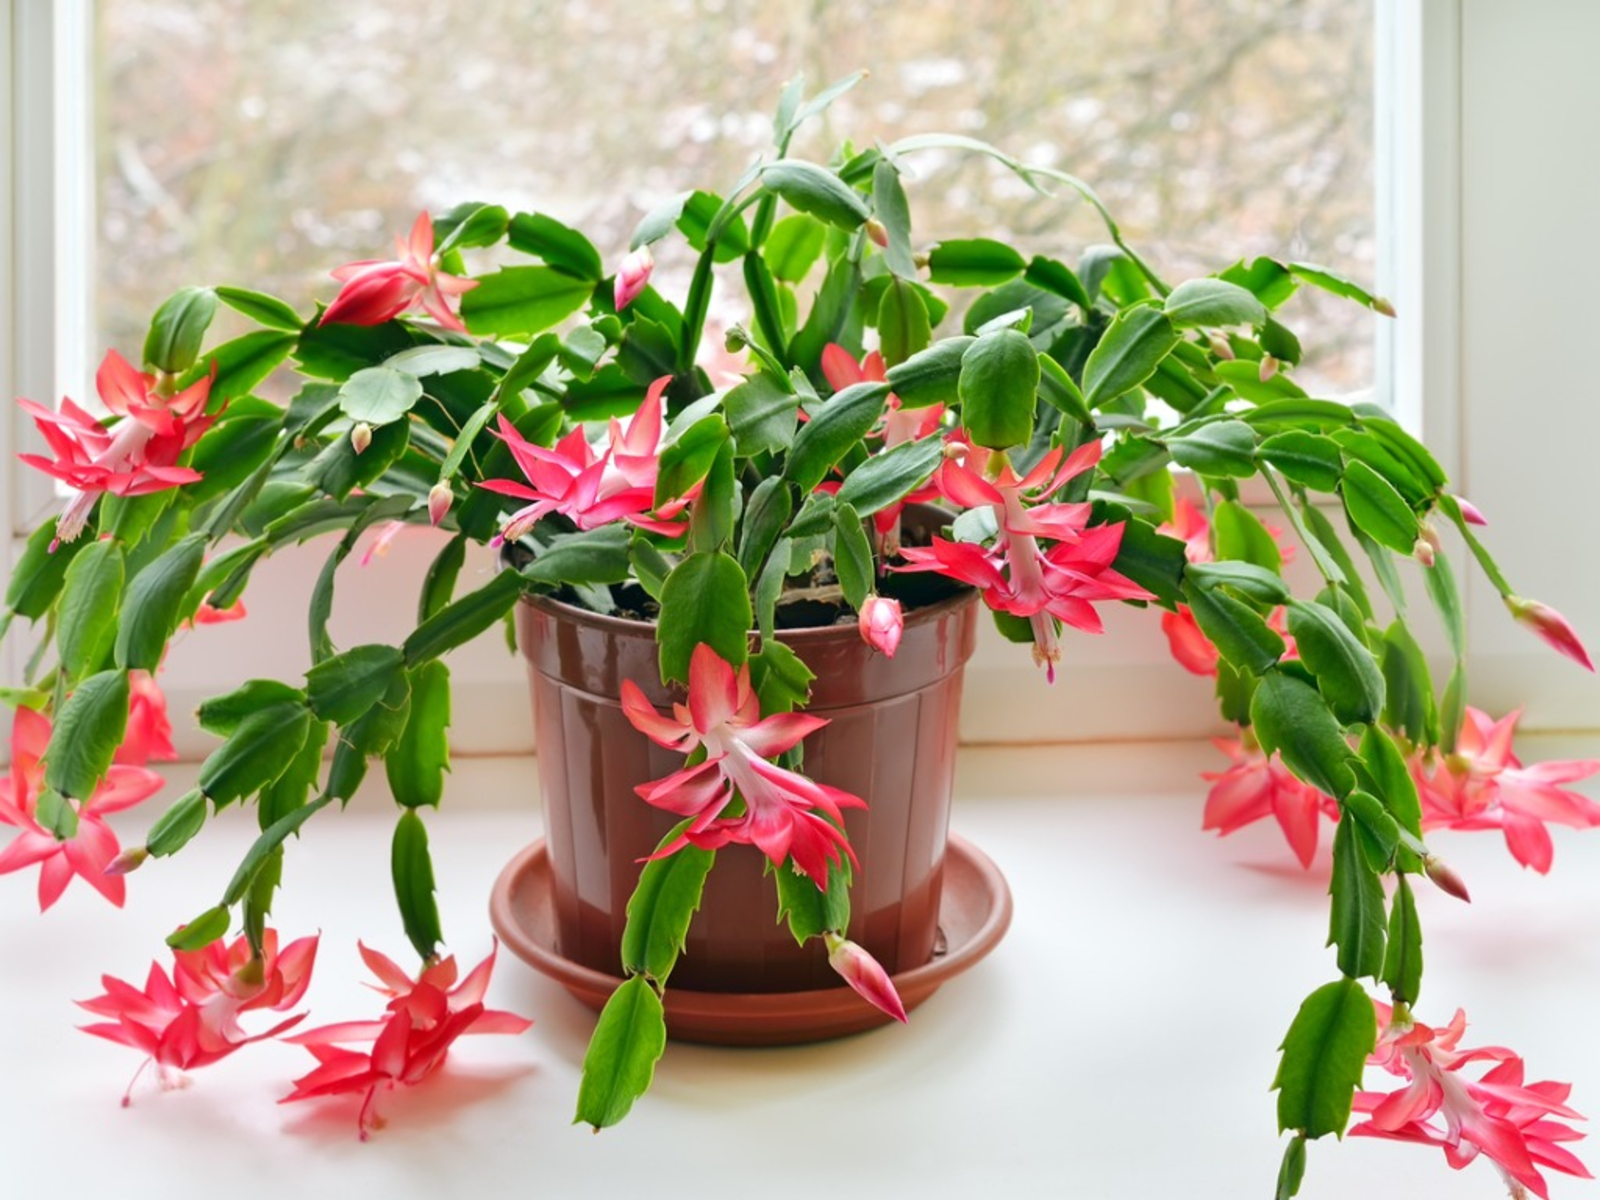 How To Care For A Christmas Cactus Houseplant